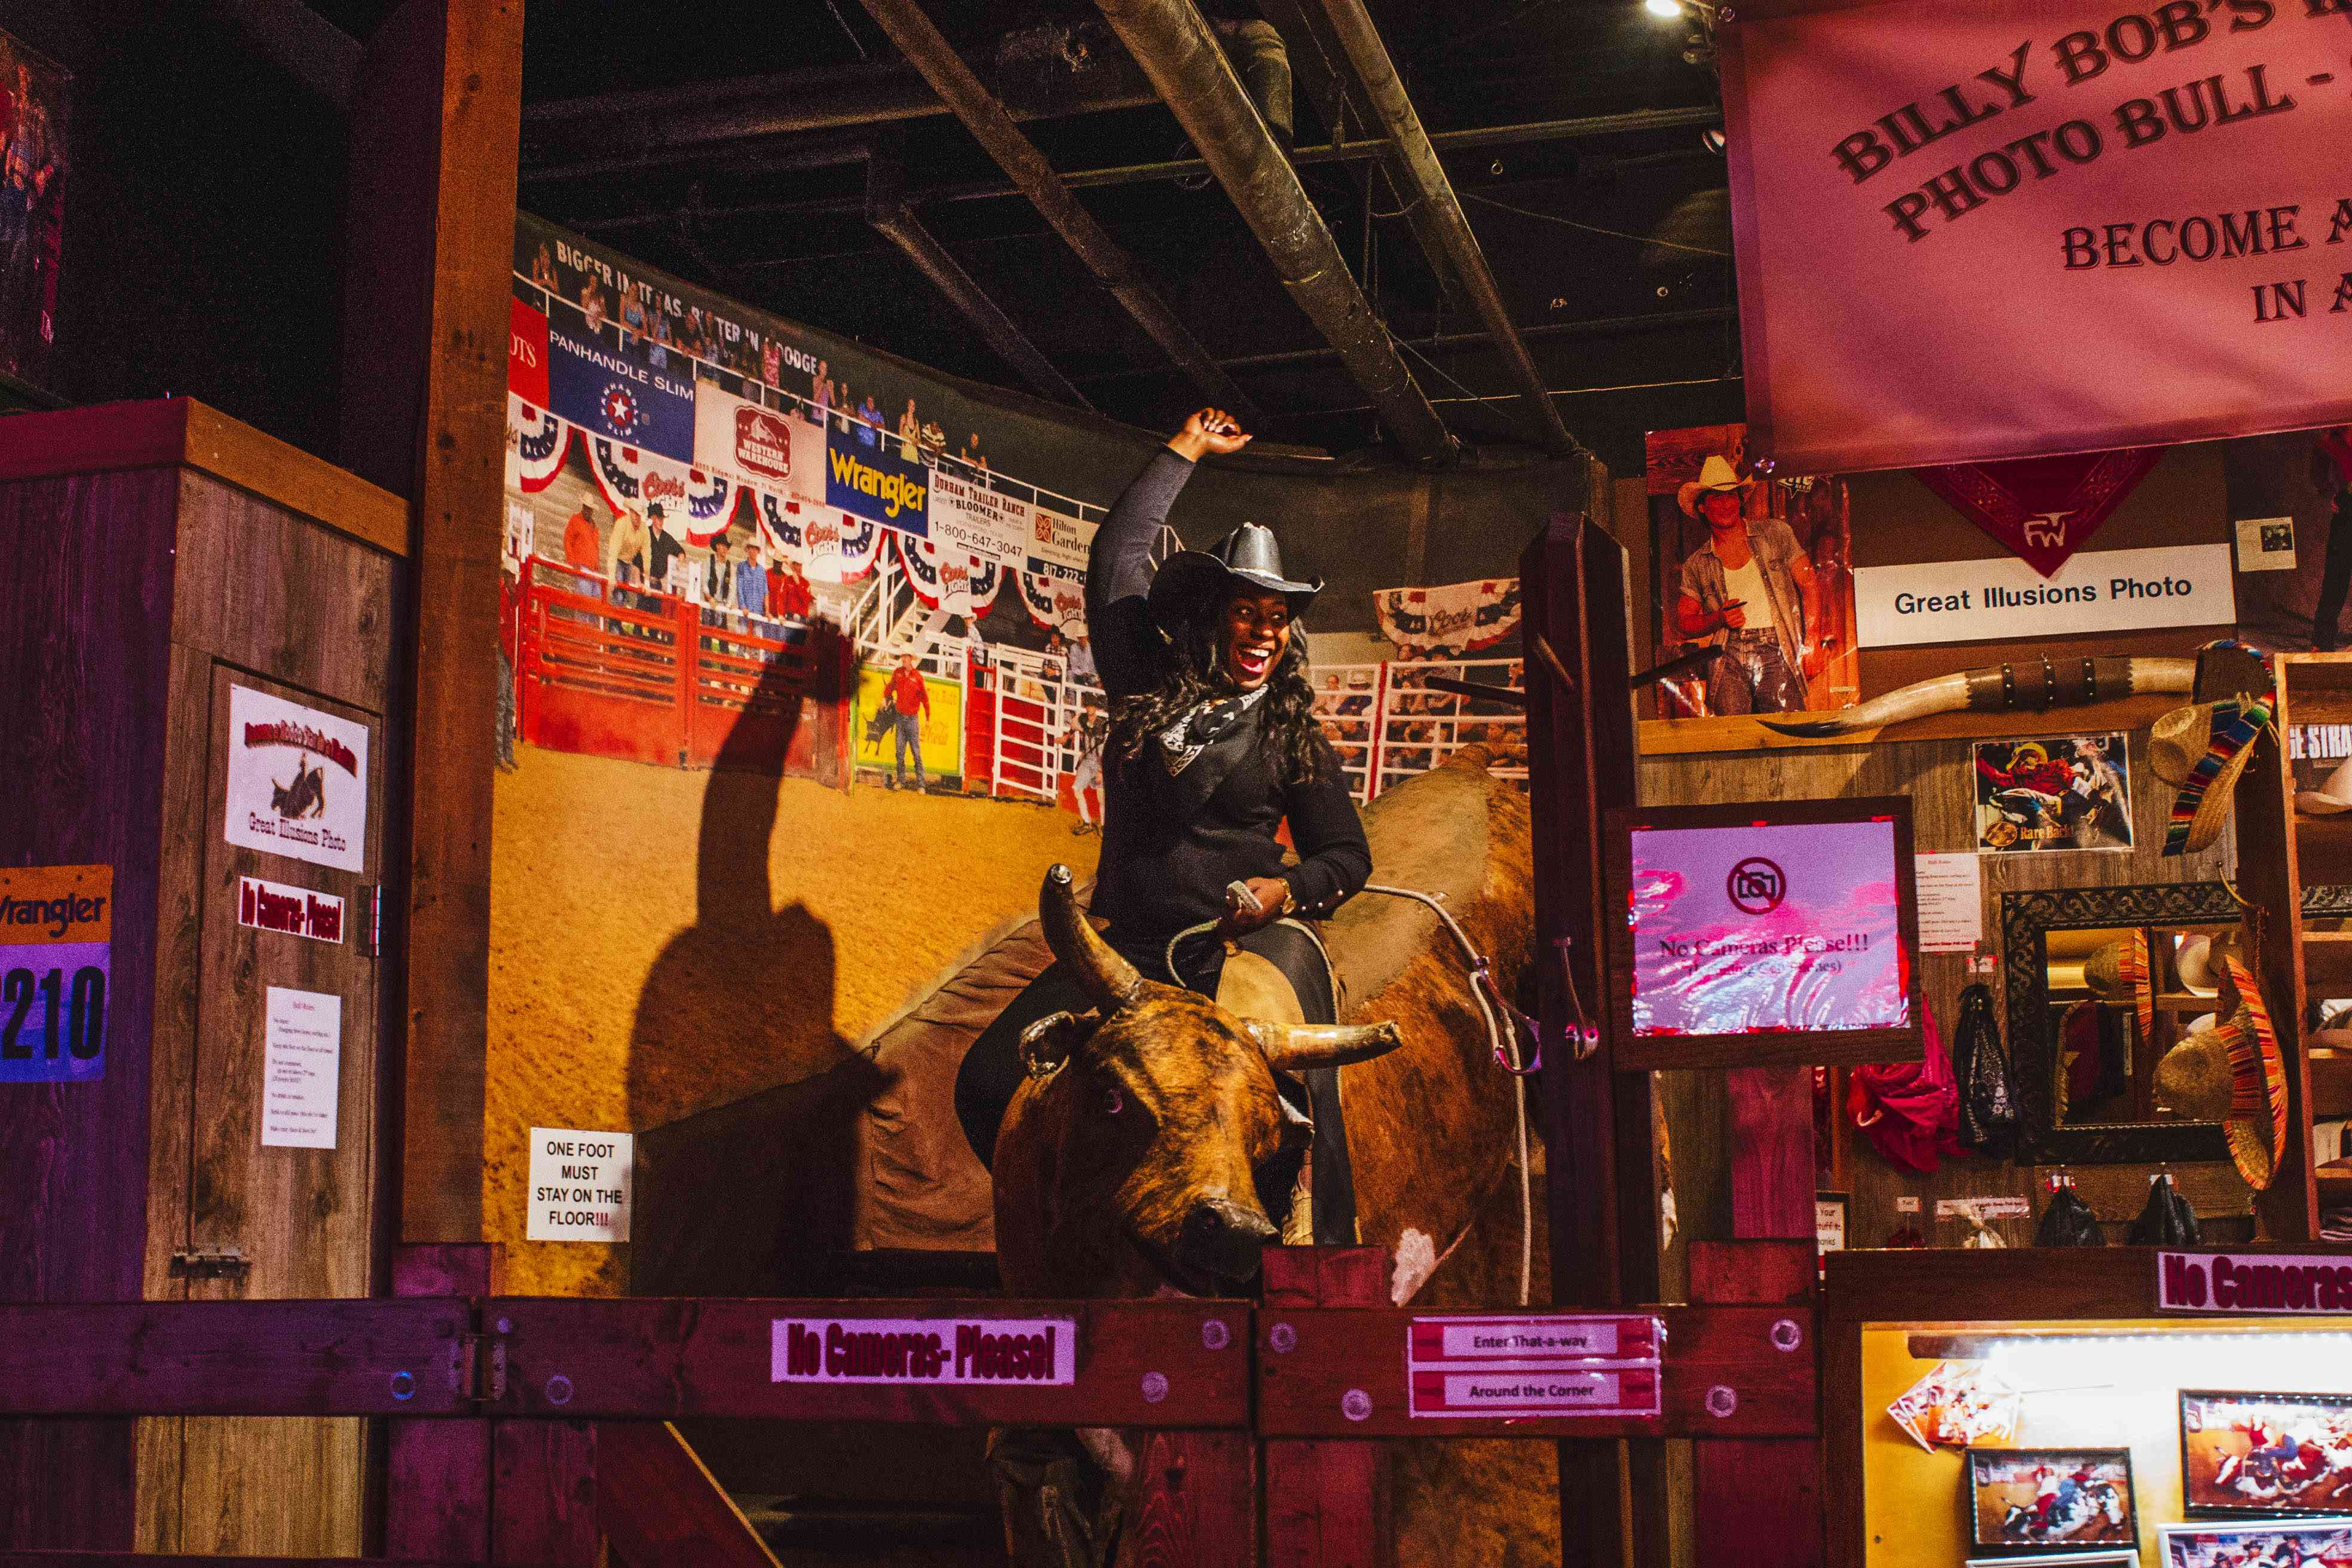 A woman posing on a mechanical bull for a photo at Billy Bob's